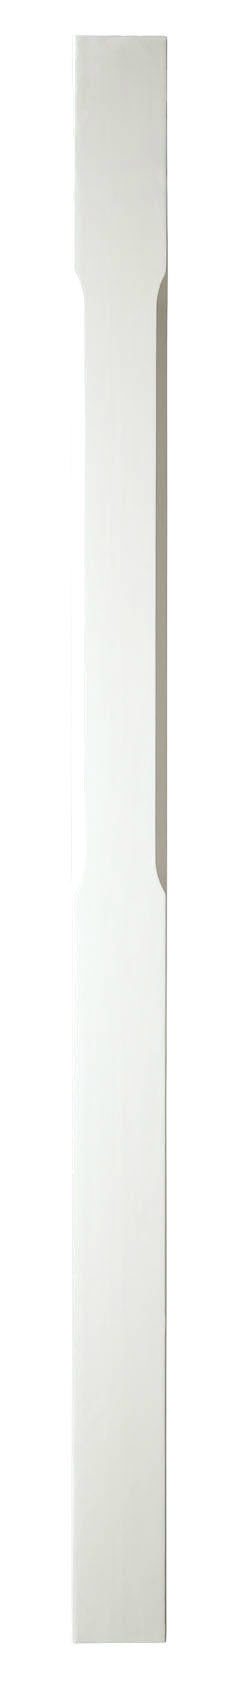 1 White Stop Chamfer Newel Post 1500 90